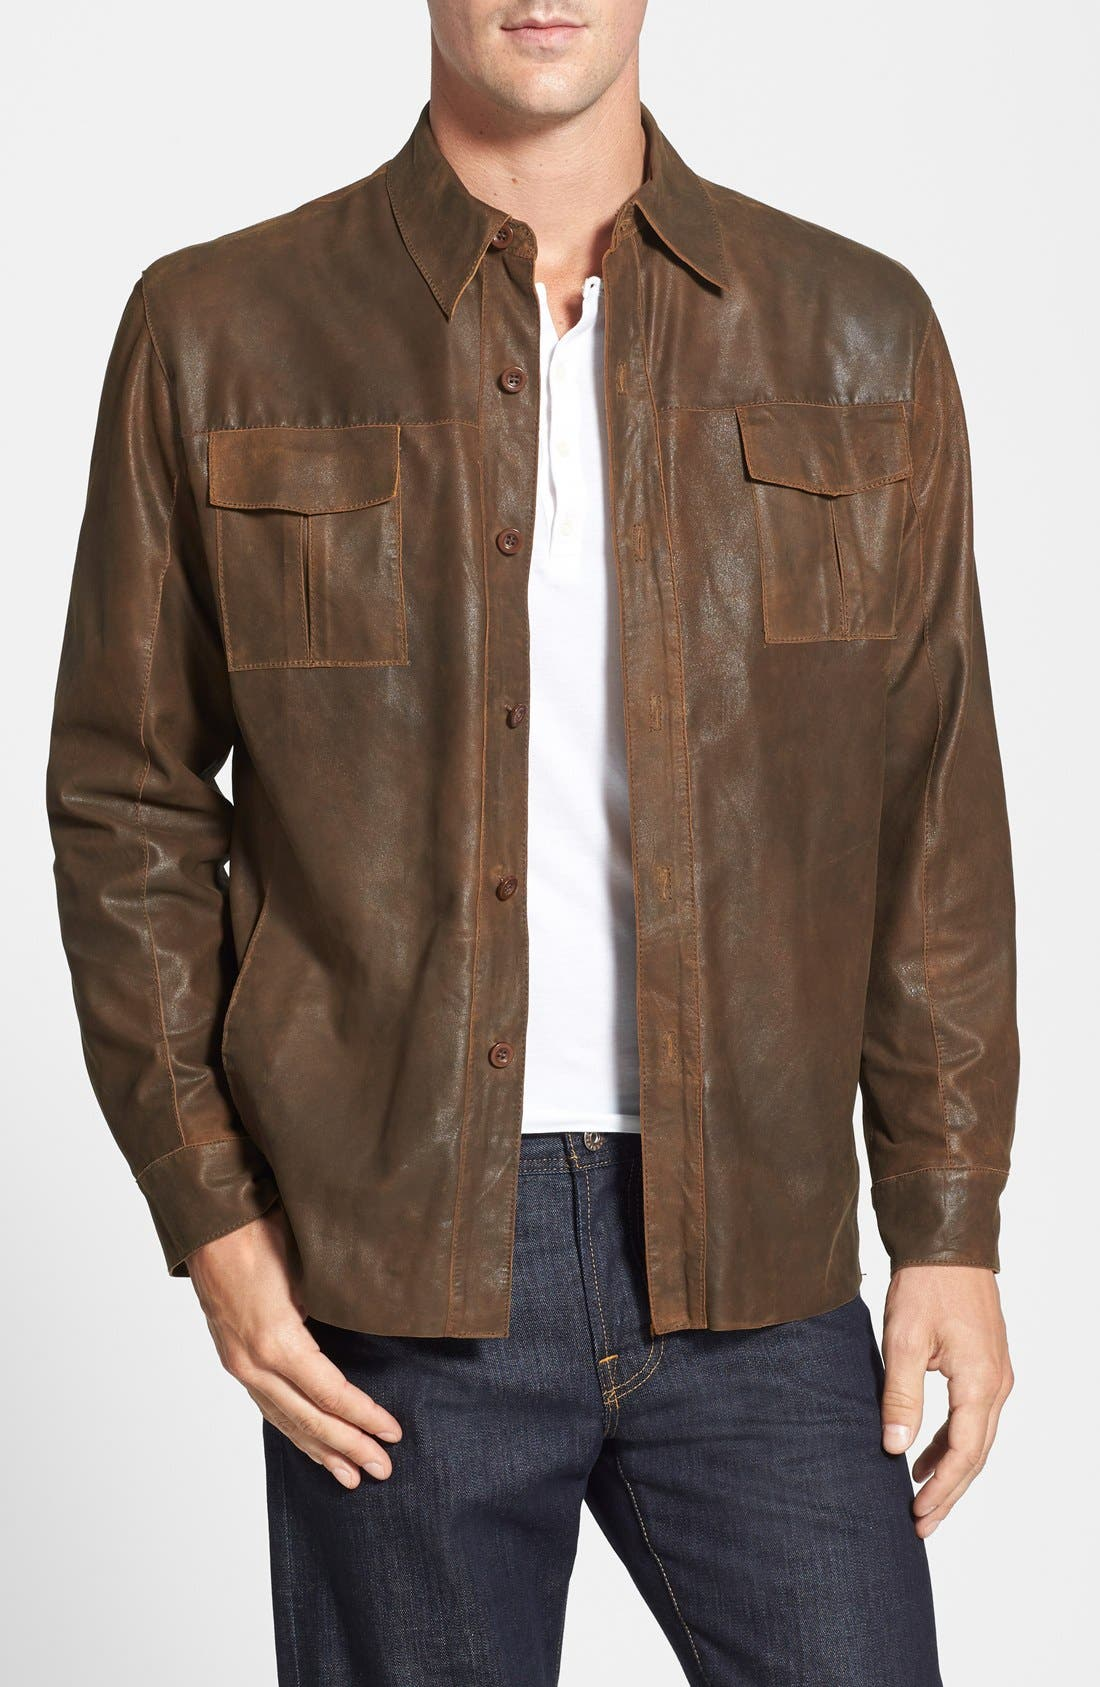 Main Image - Missani Le Collezioni Classic Fit Military Shirt Leather Jacket